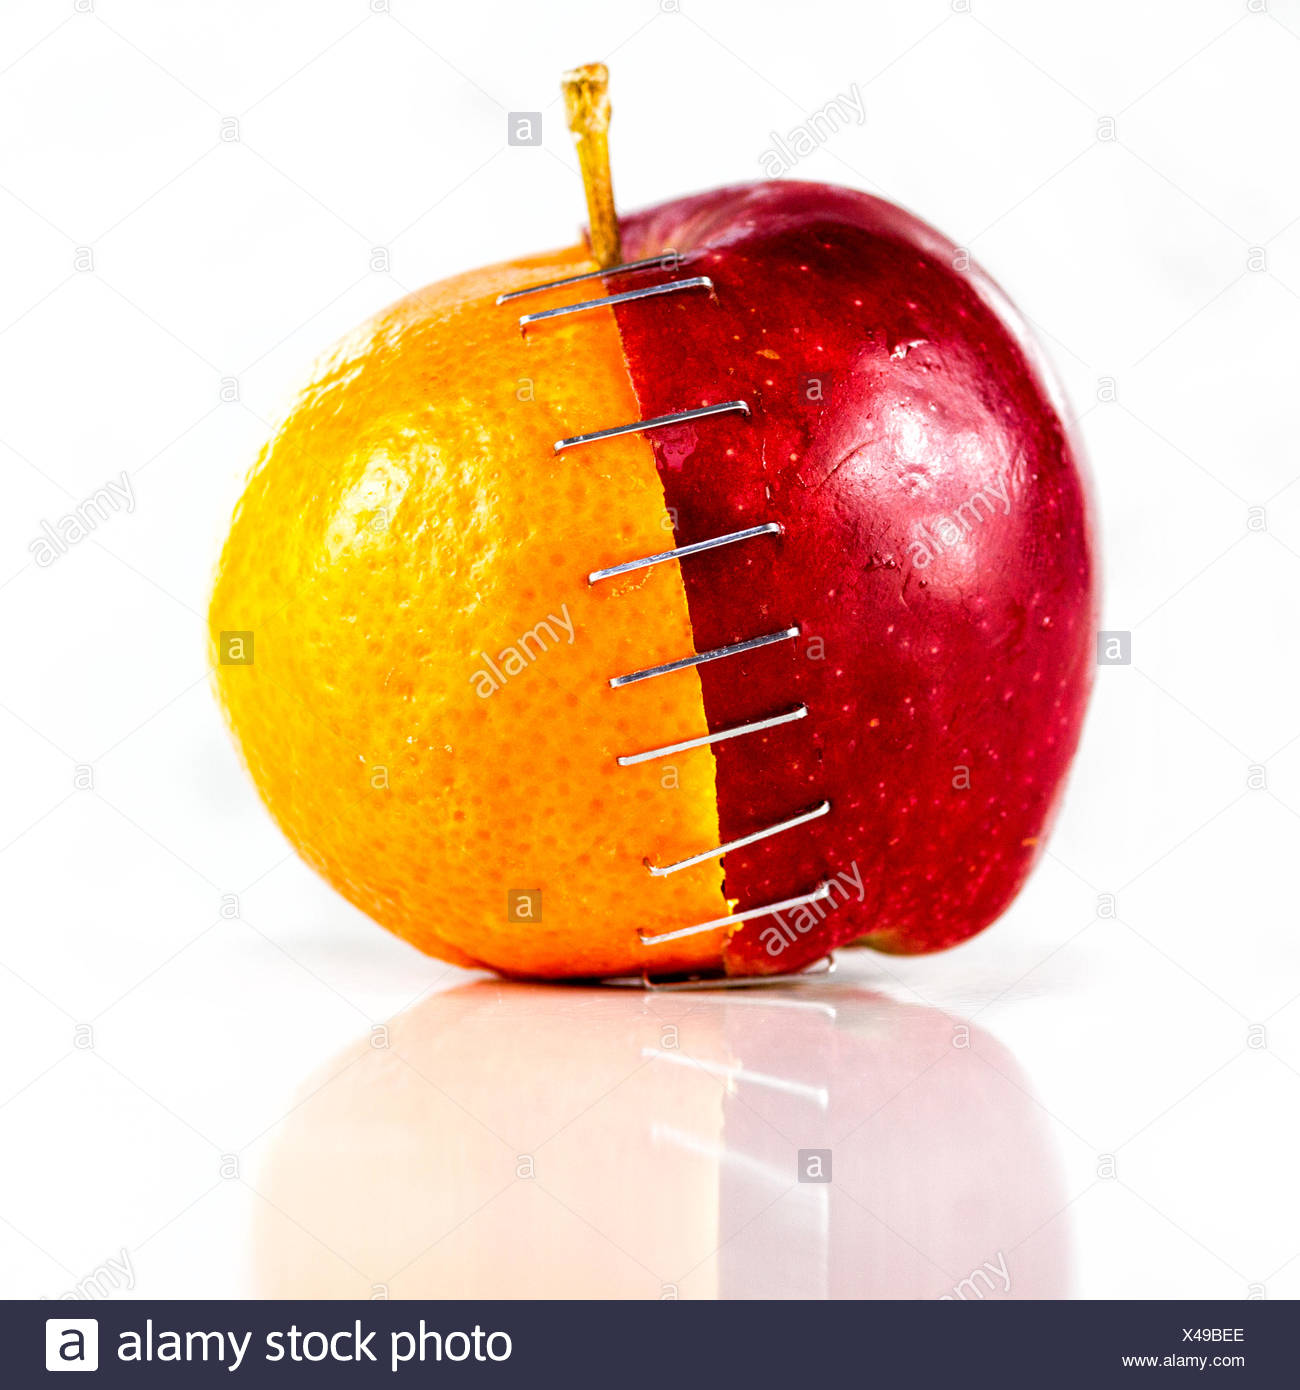 Apple and orange stapled together - Stock Image